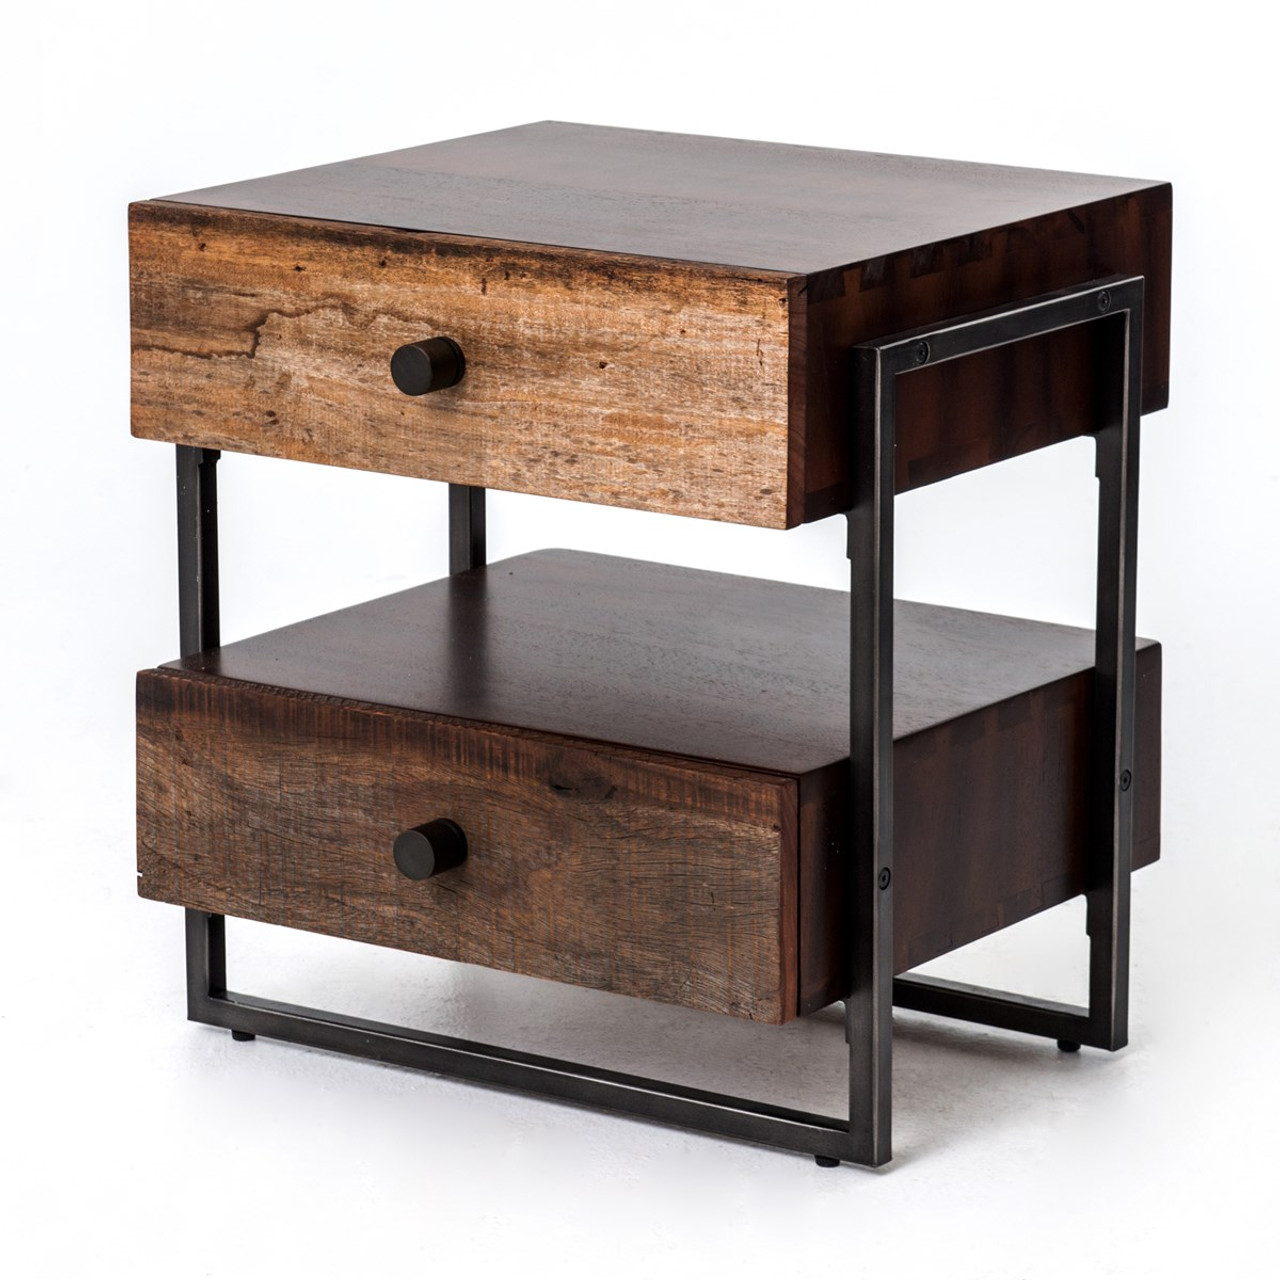 End table with drawer - Milo Industrial 2 Drawer End Table